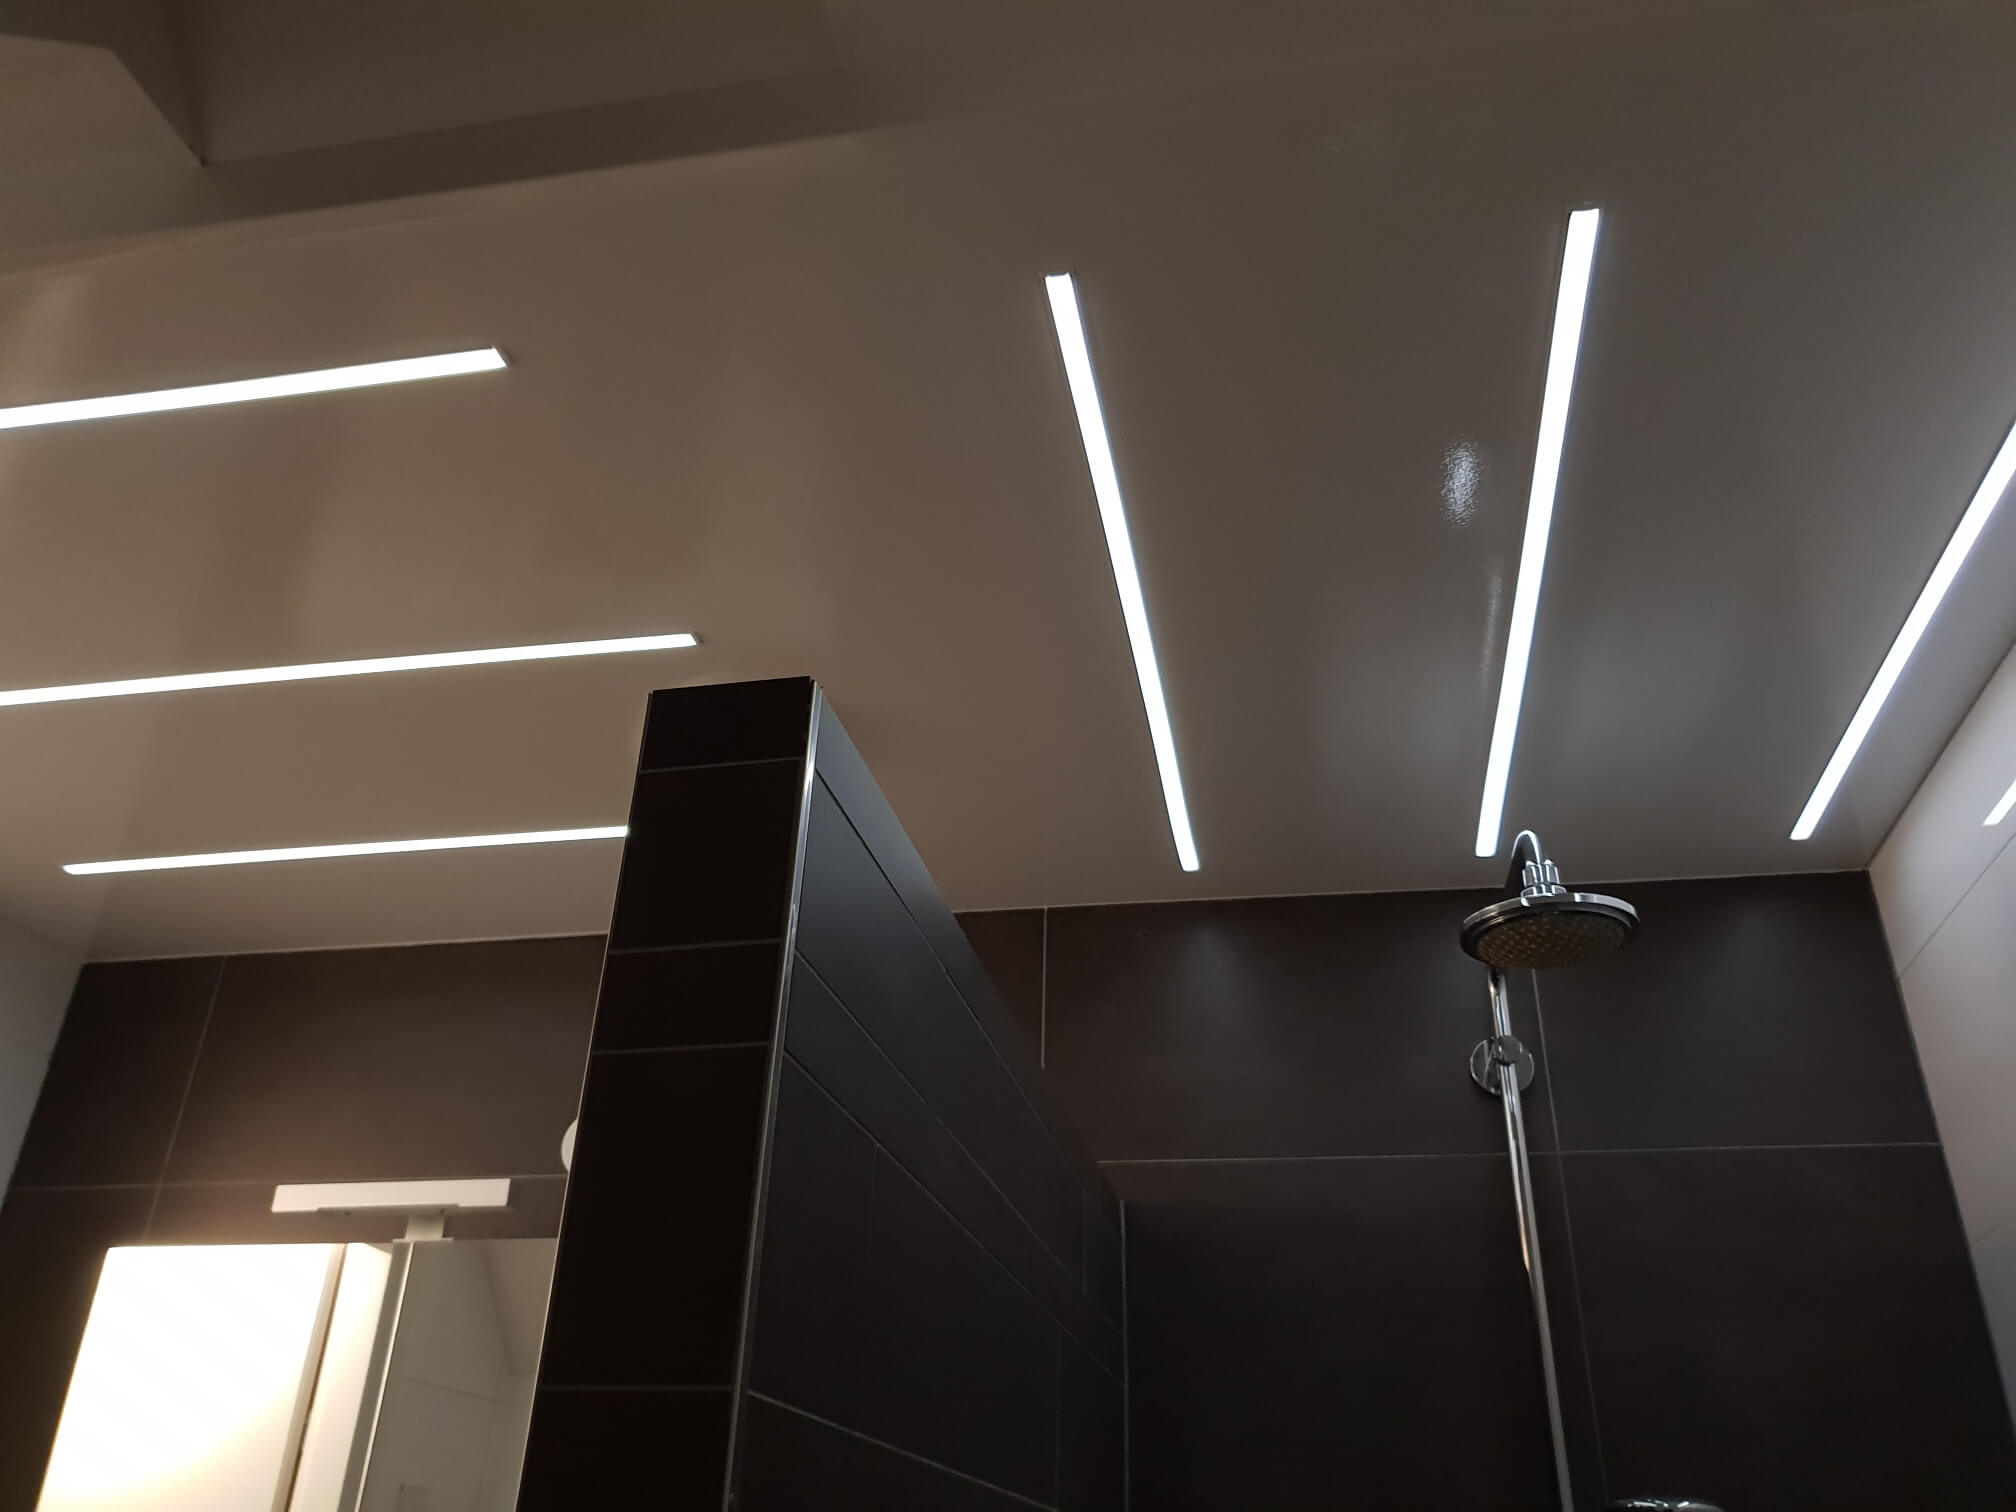 Aluminium led strip profielen